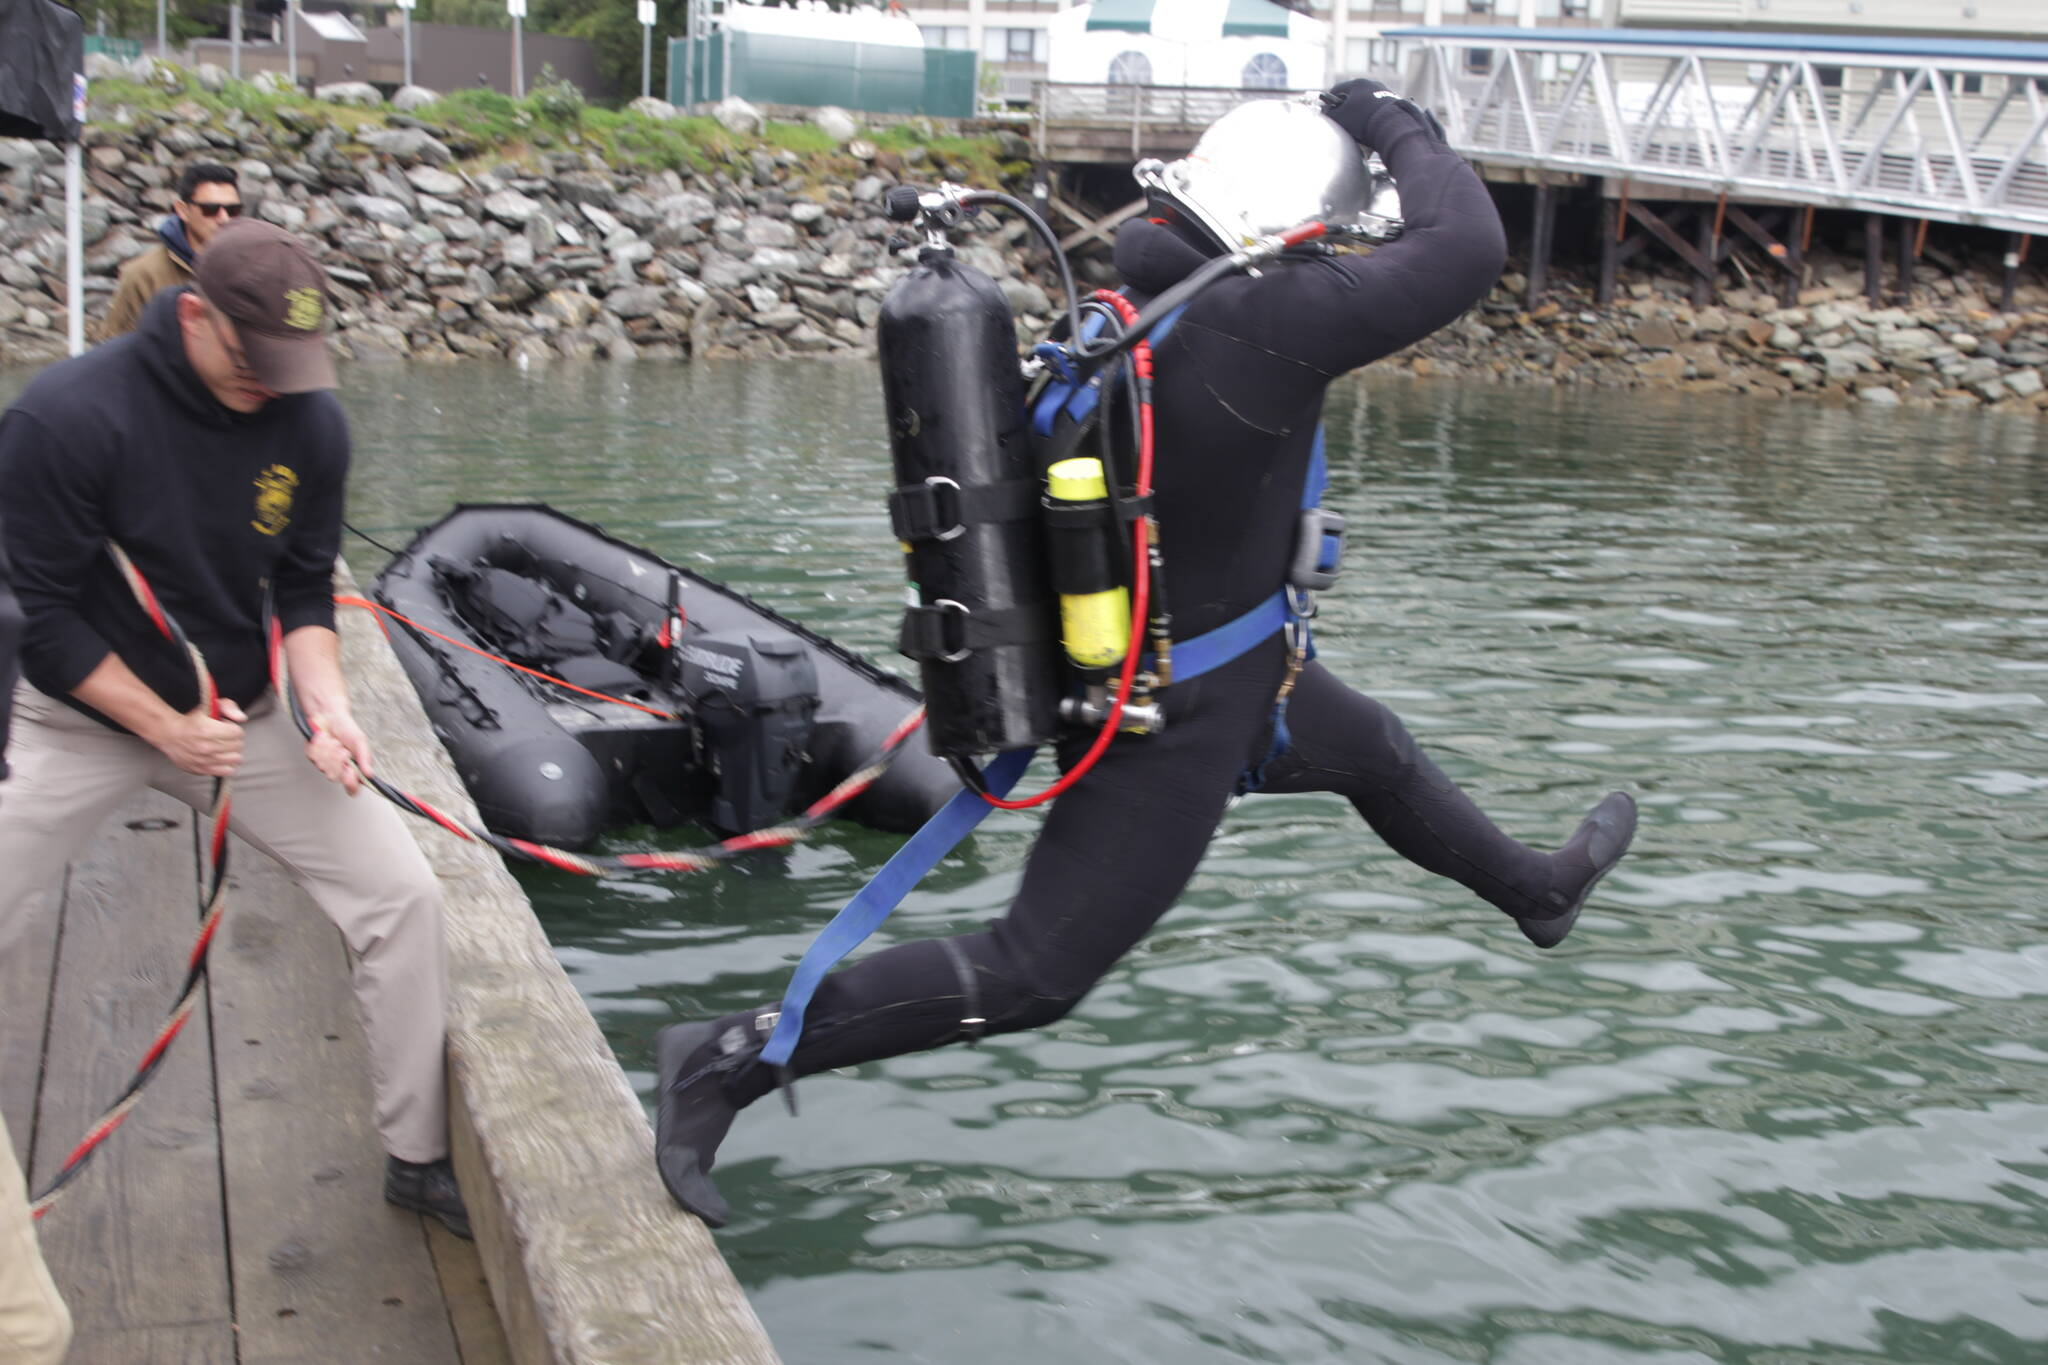 Army Pfc. Luke McCarty jumps in the water during training for the engineer divers with a Coast Guard dive team on Sept. 6, 2021. (Courtesy photo / MyKenzie Robertson)